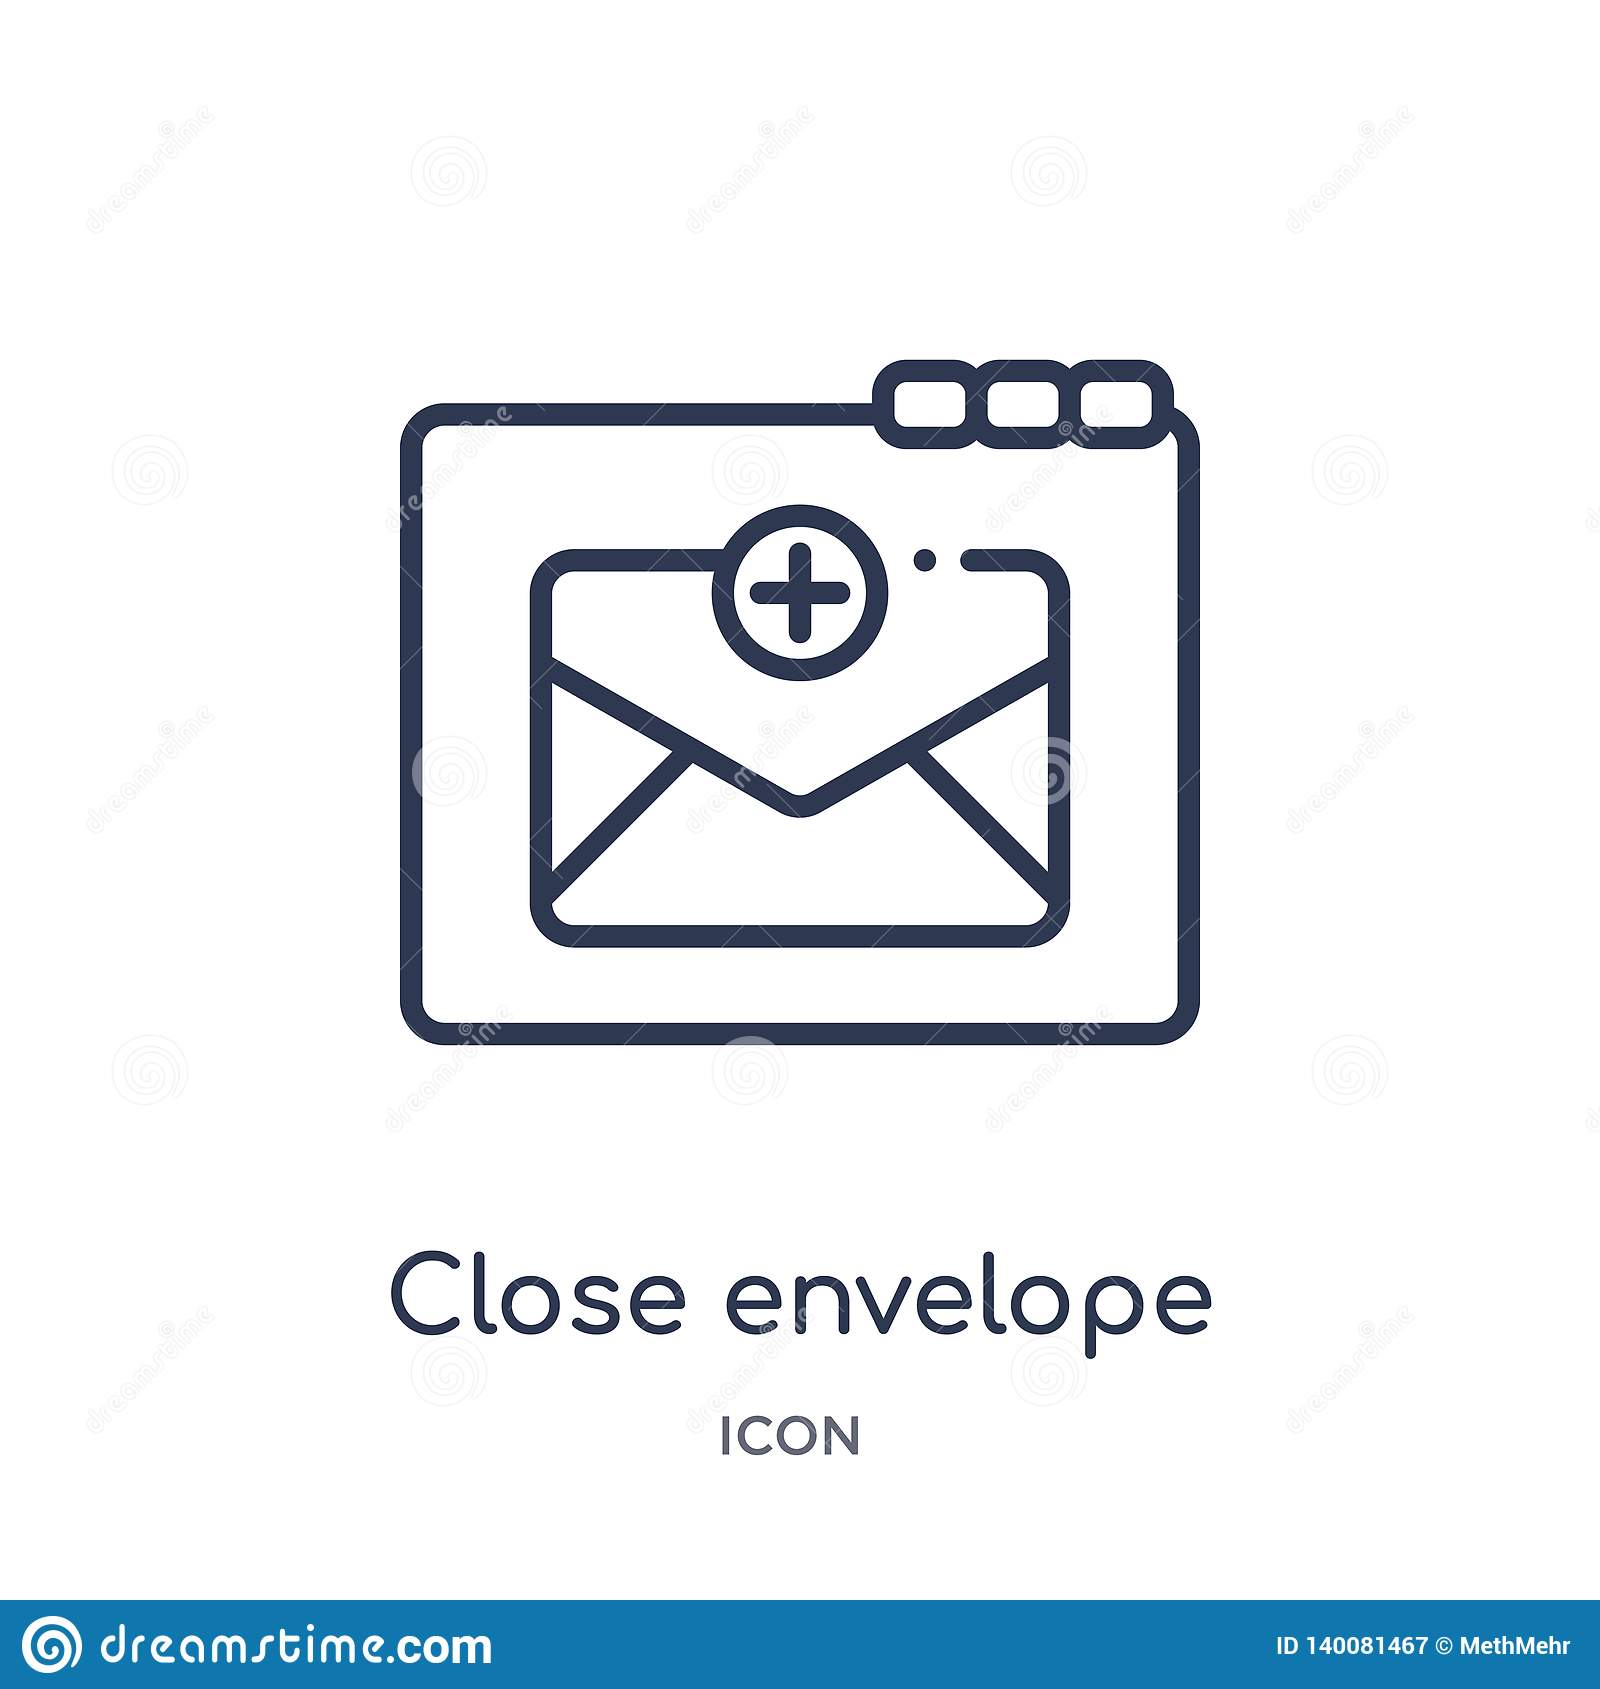 Close envelope icon from web outline collection. Thin line close envelope icon isolated on white background